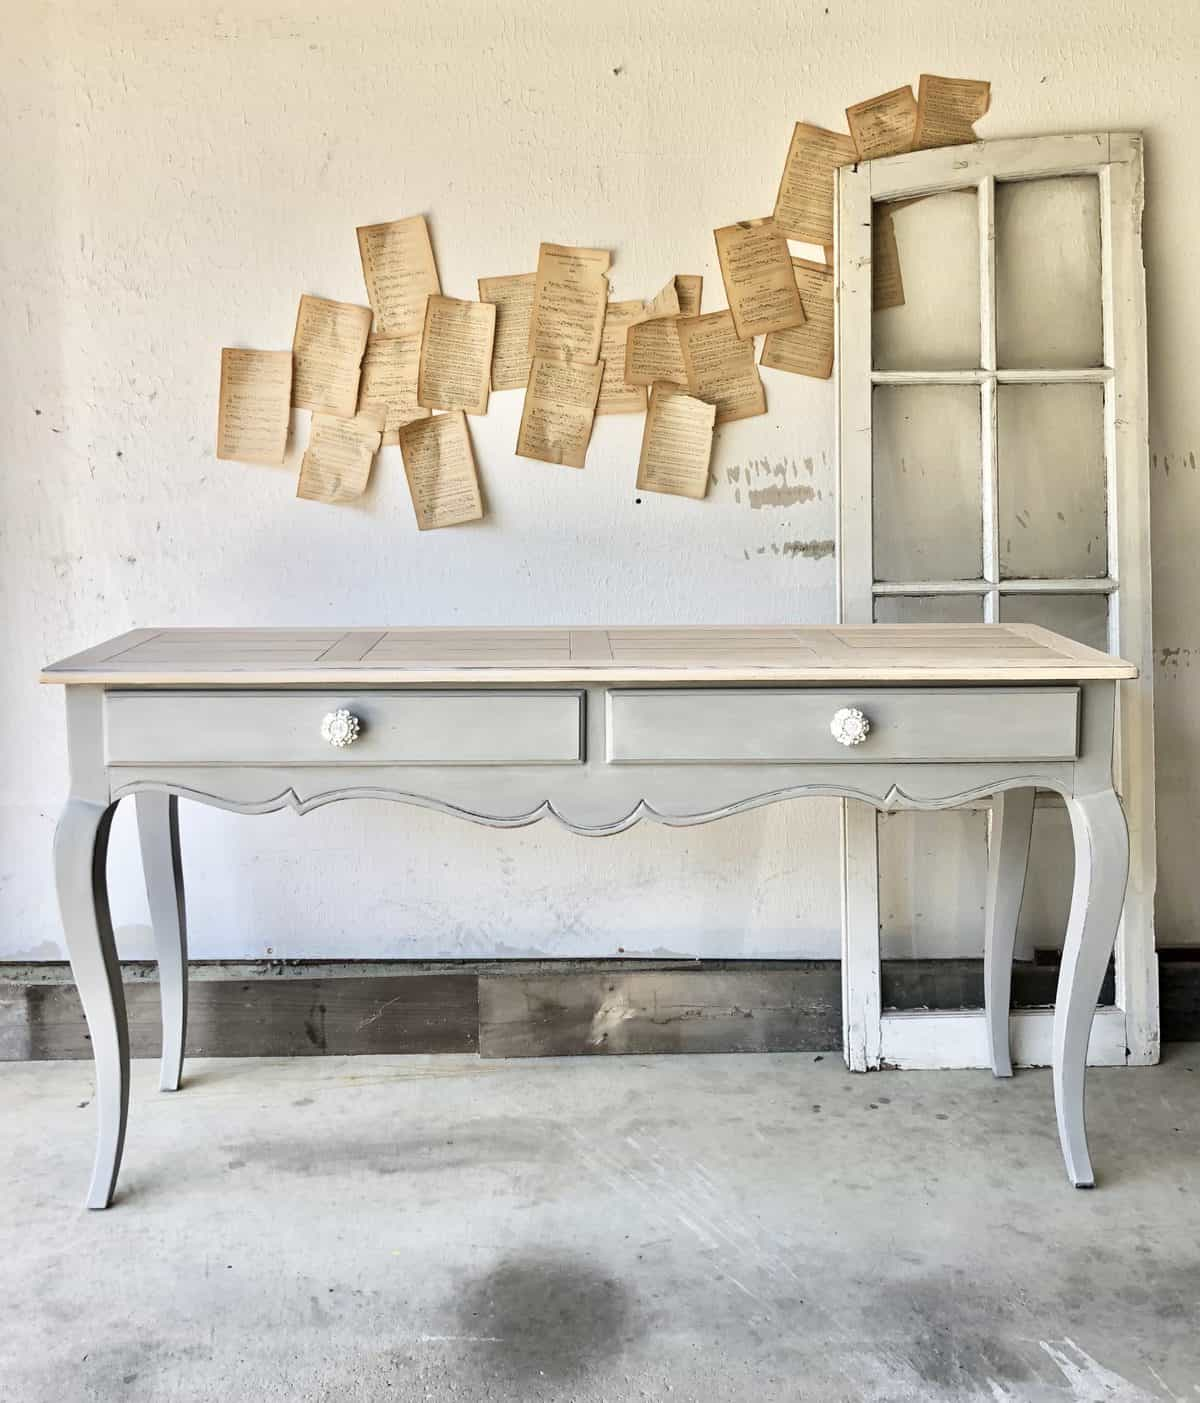 Taupe grey painted console table - Pebble Beach mixed with Driftwood and Pop the Bubbly - by Abbey Franer